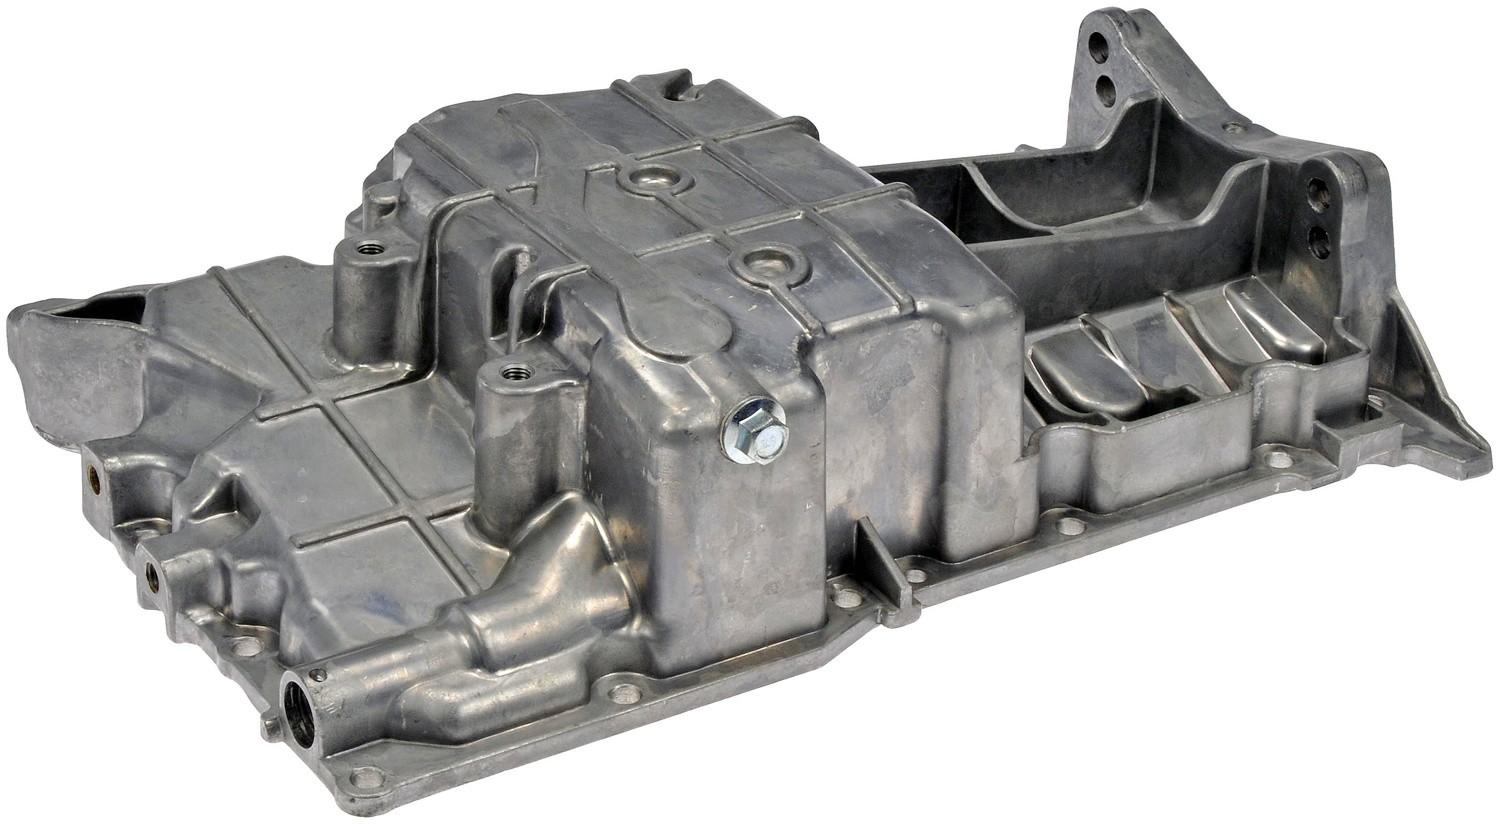 Engine oil pan fits some 2002 2005 chevrolet cavalier for Motor oil for 2002 chevy cavalier